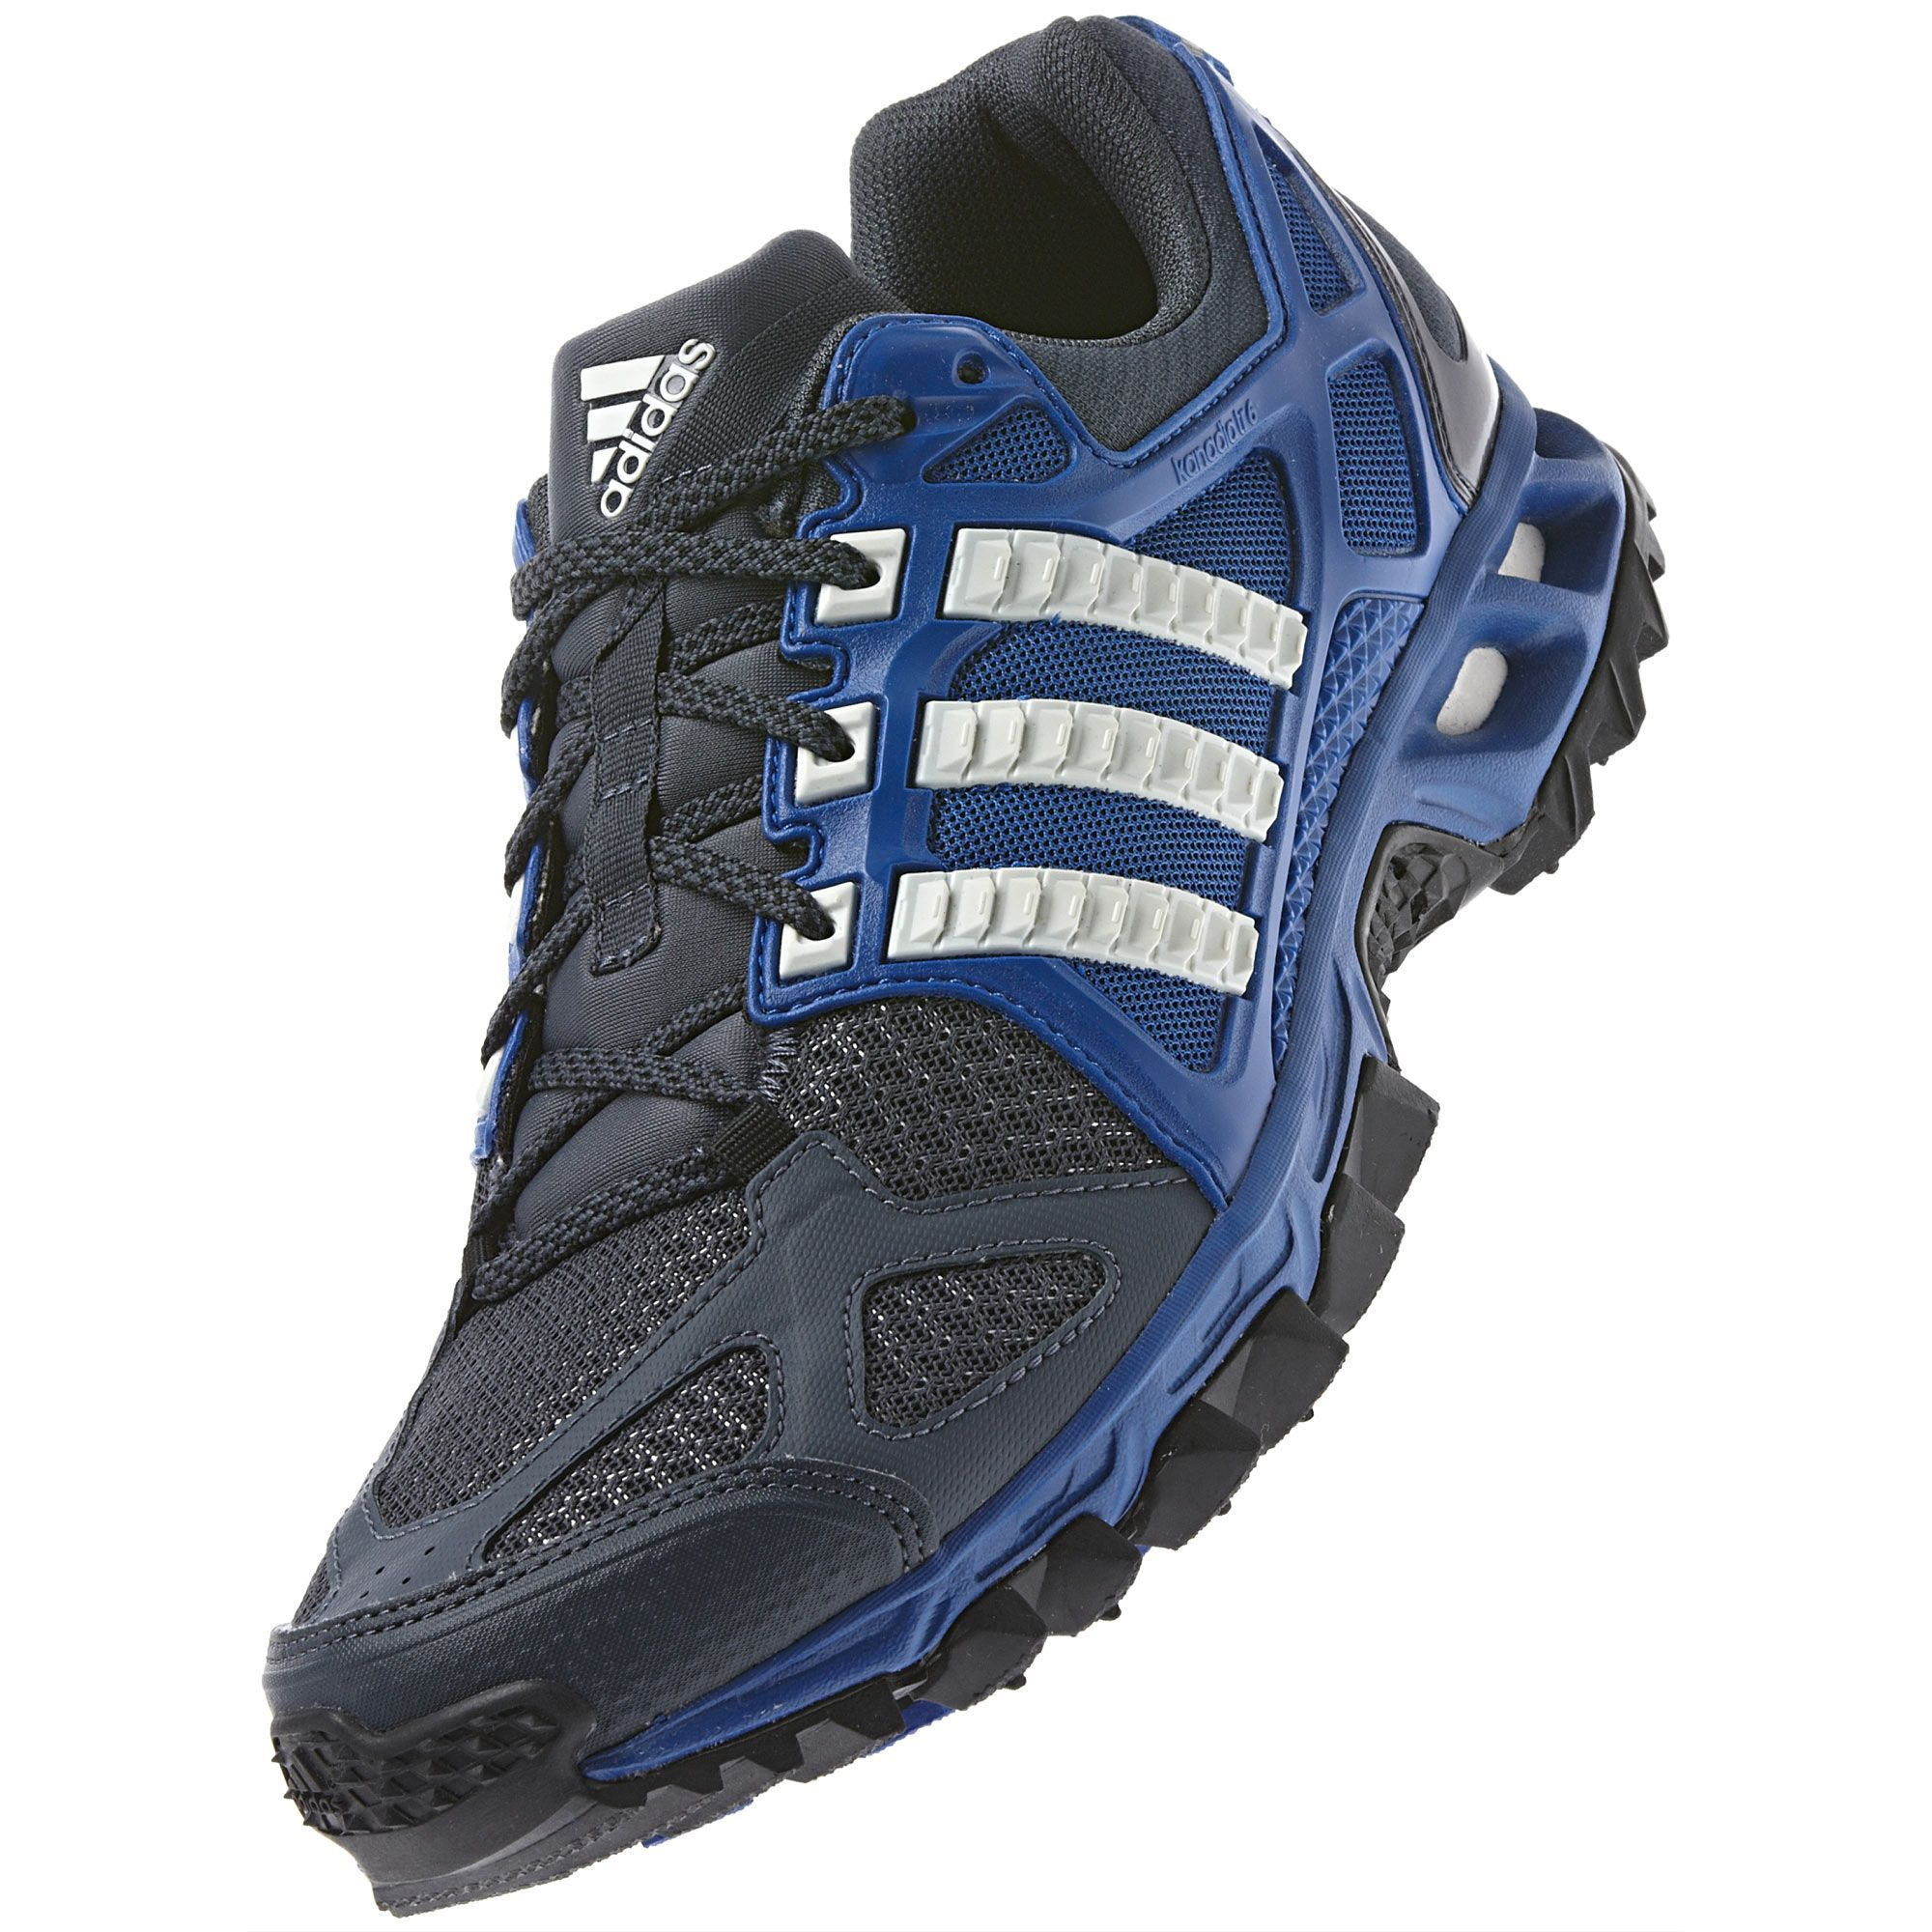 Menos que neutral Productos lácteos  adidas Kanadia Trail 6 Shoes | adidas Regional | Best trail running shoes,  Backpacking boots, Adidas fashion sneakers